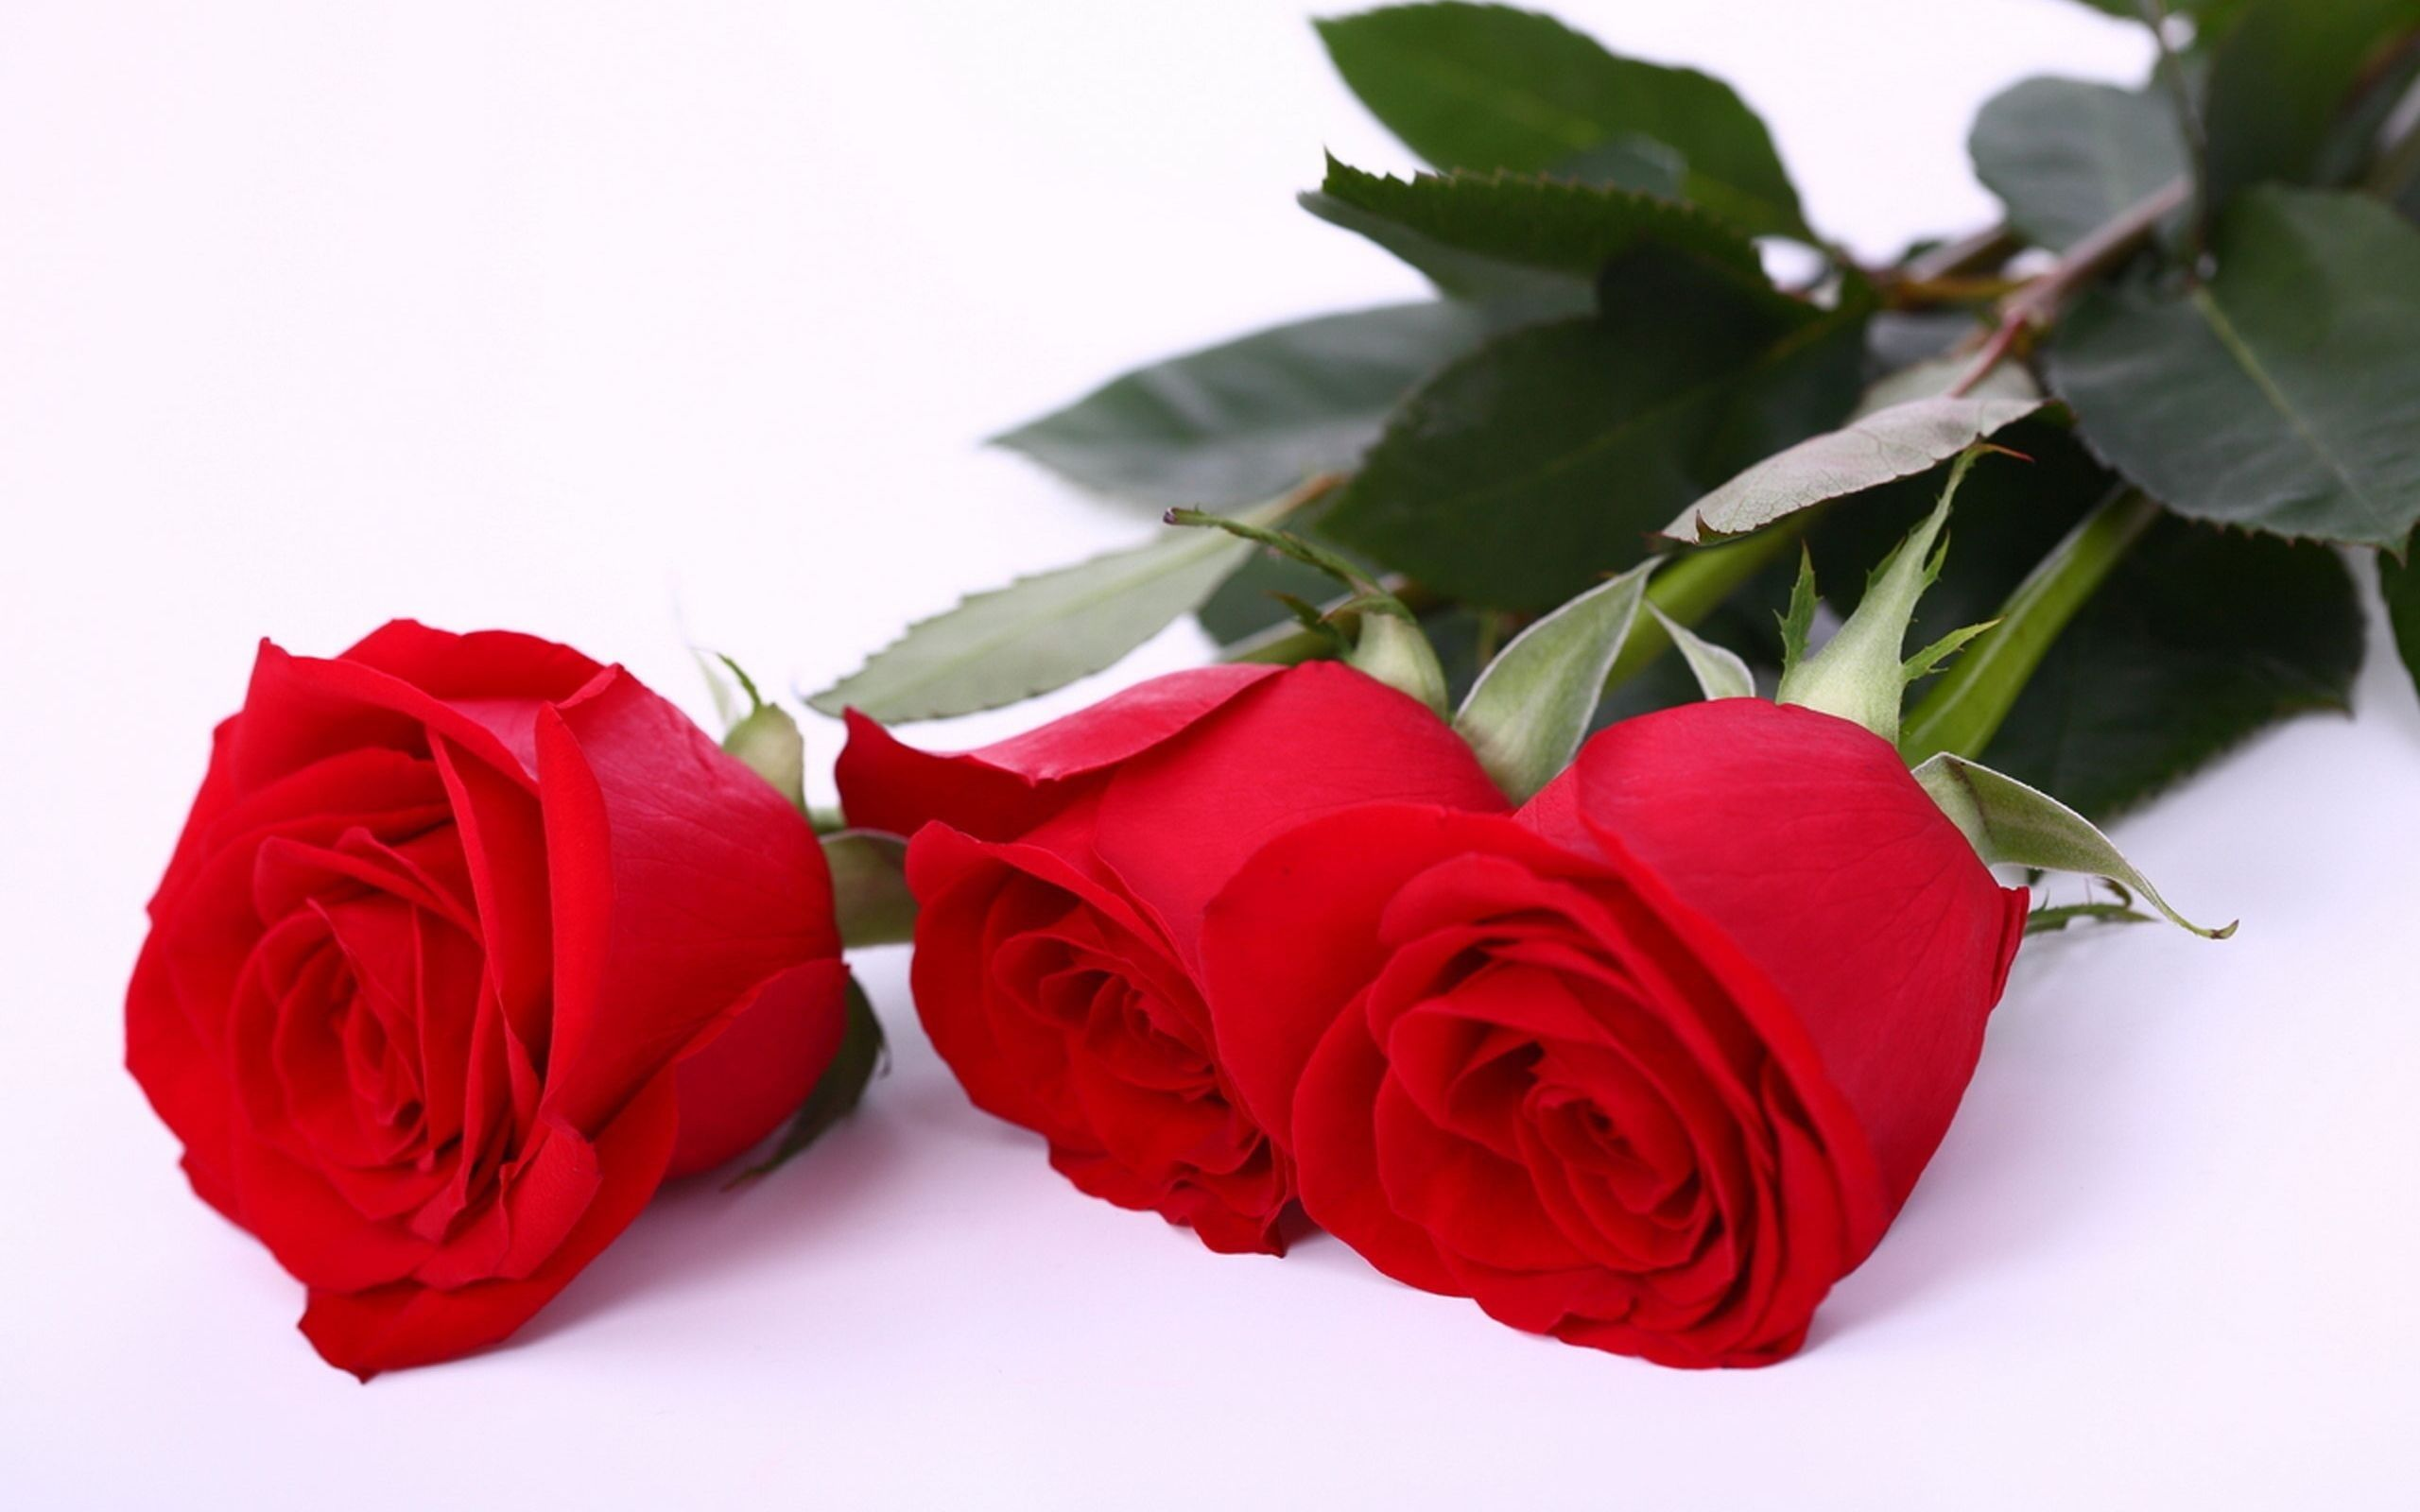 Beautiful Red Rose Hd Wallpapers For More Please Visit Etcfn